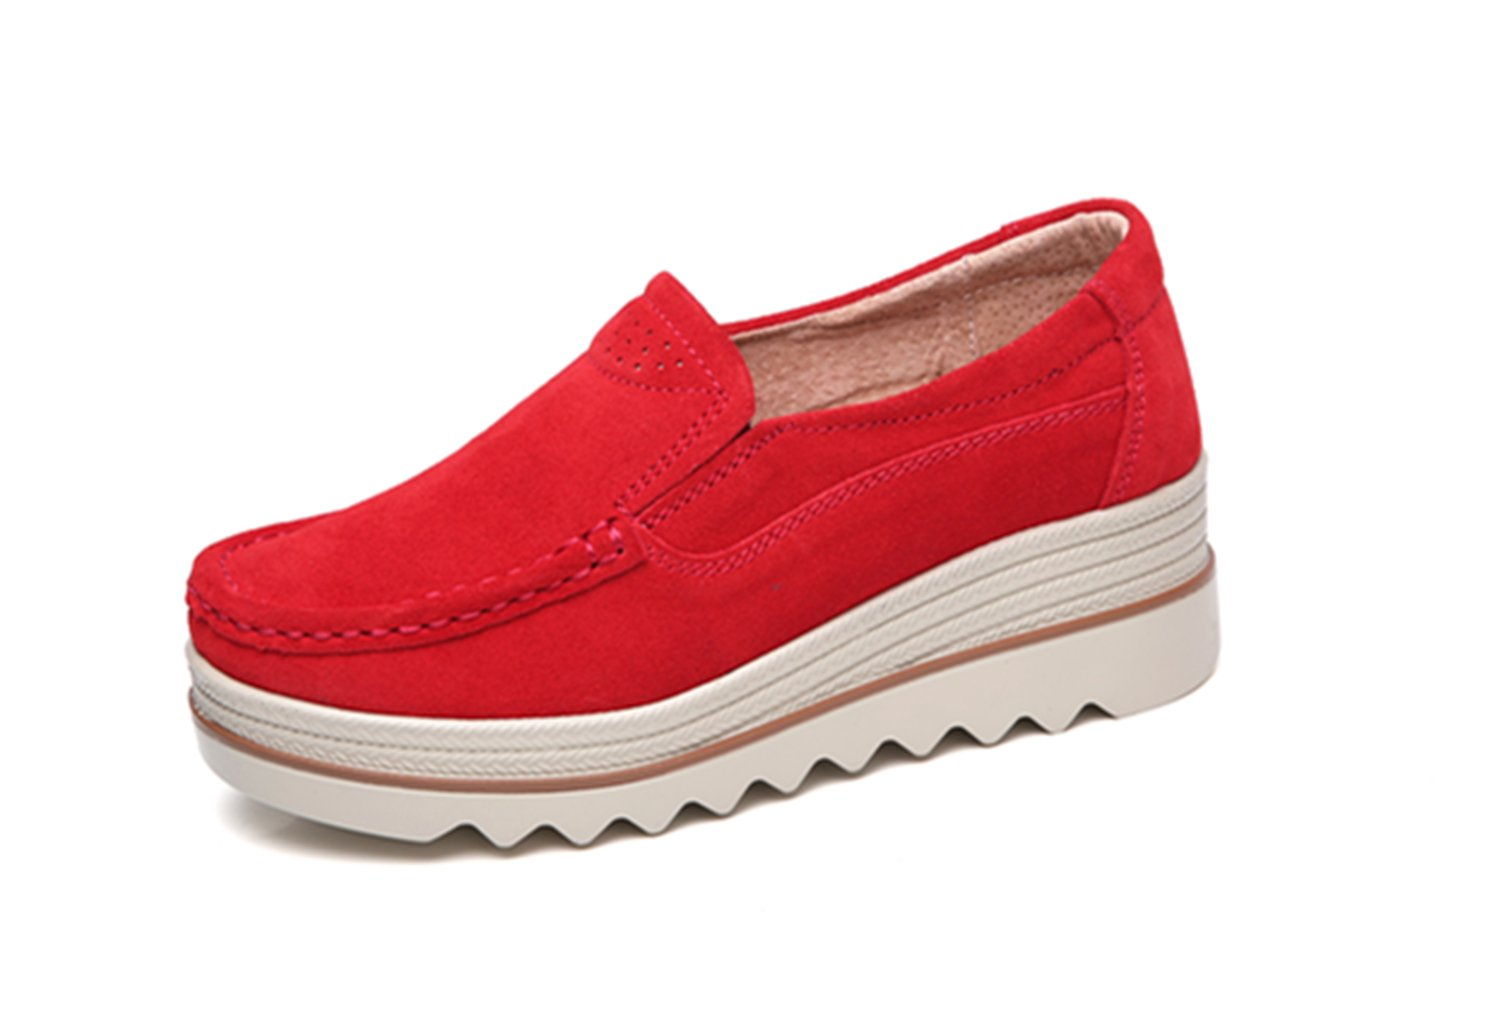 Dhiuow Platform Shoes Women Slip on Loafers Suede Wedge Shoes Comfortable Sneakers for Ladies B07BXNDWQD 8.5 B(M) US|Red